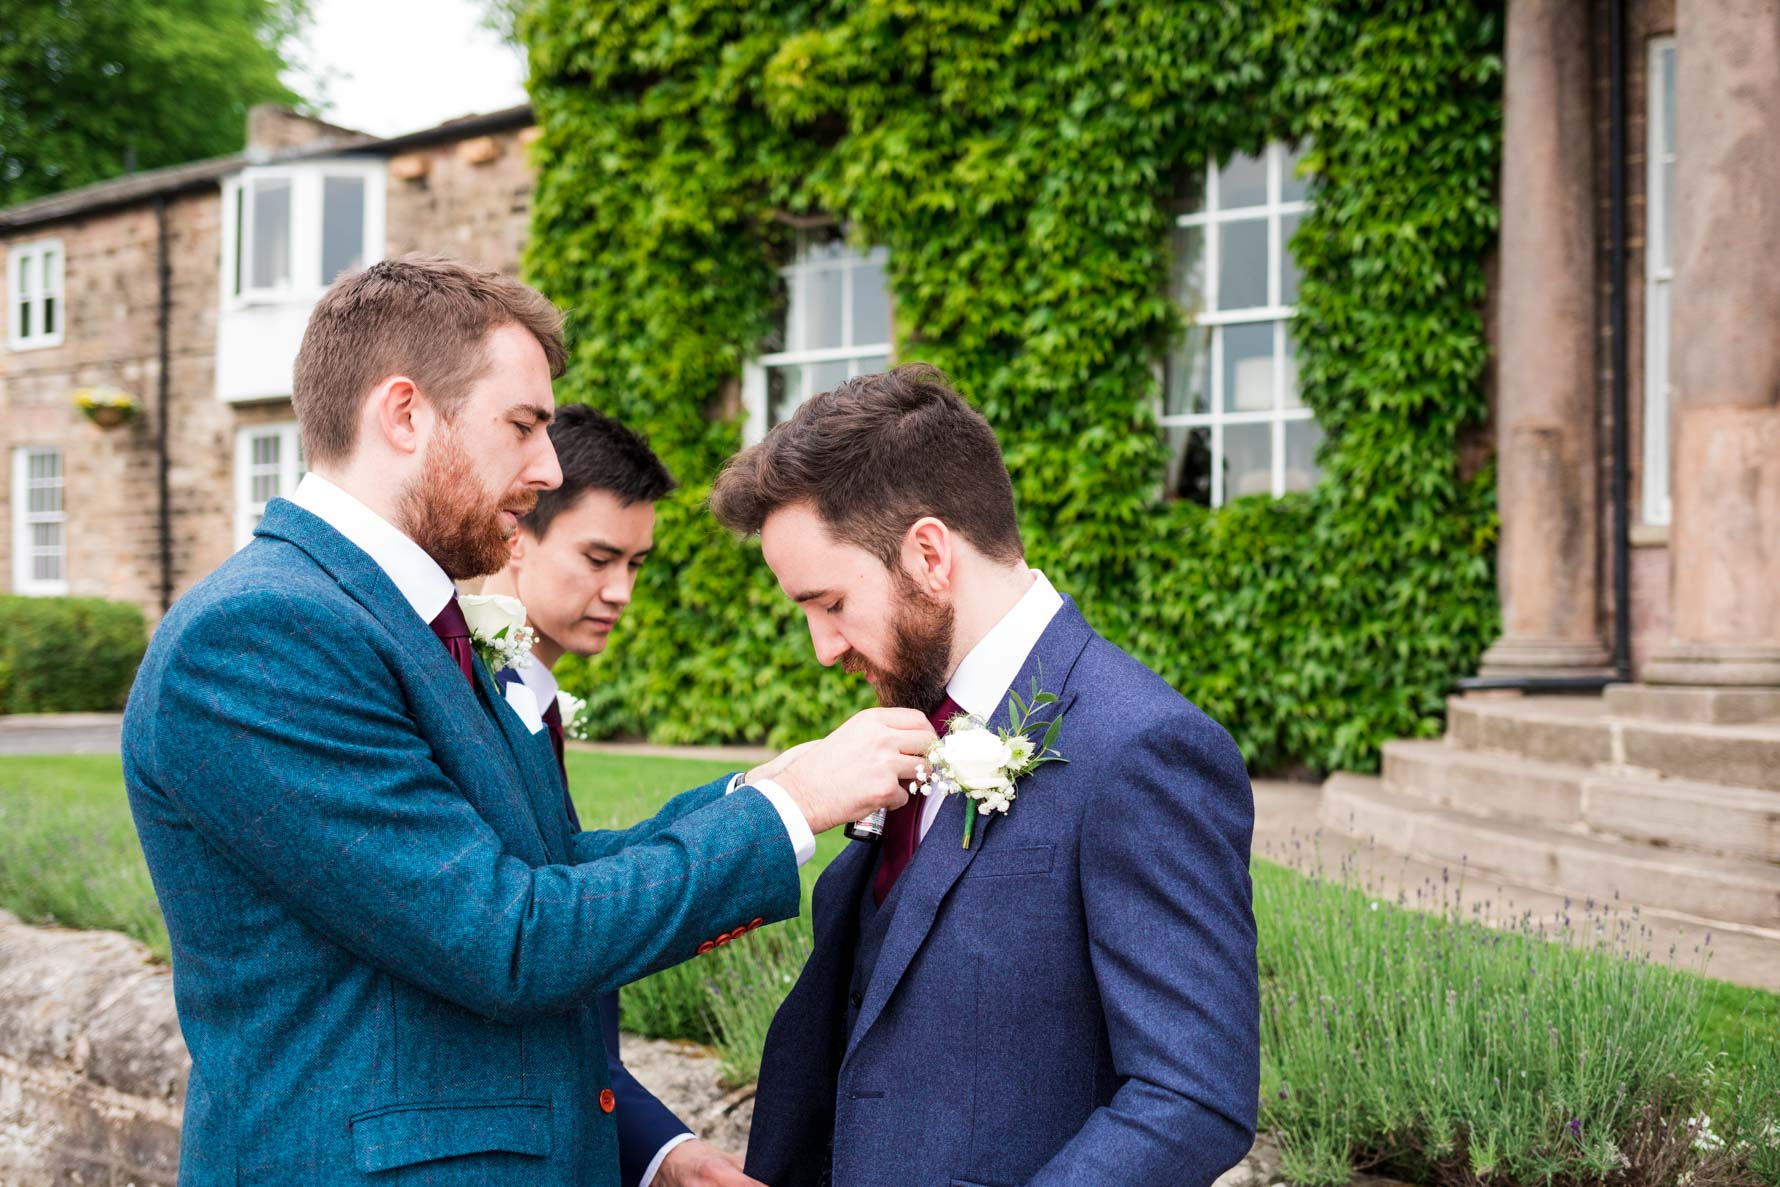 Groomsmen straightening grooms suit before ceremony